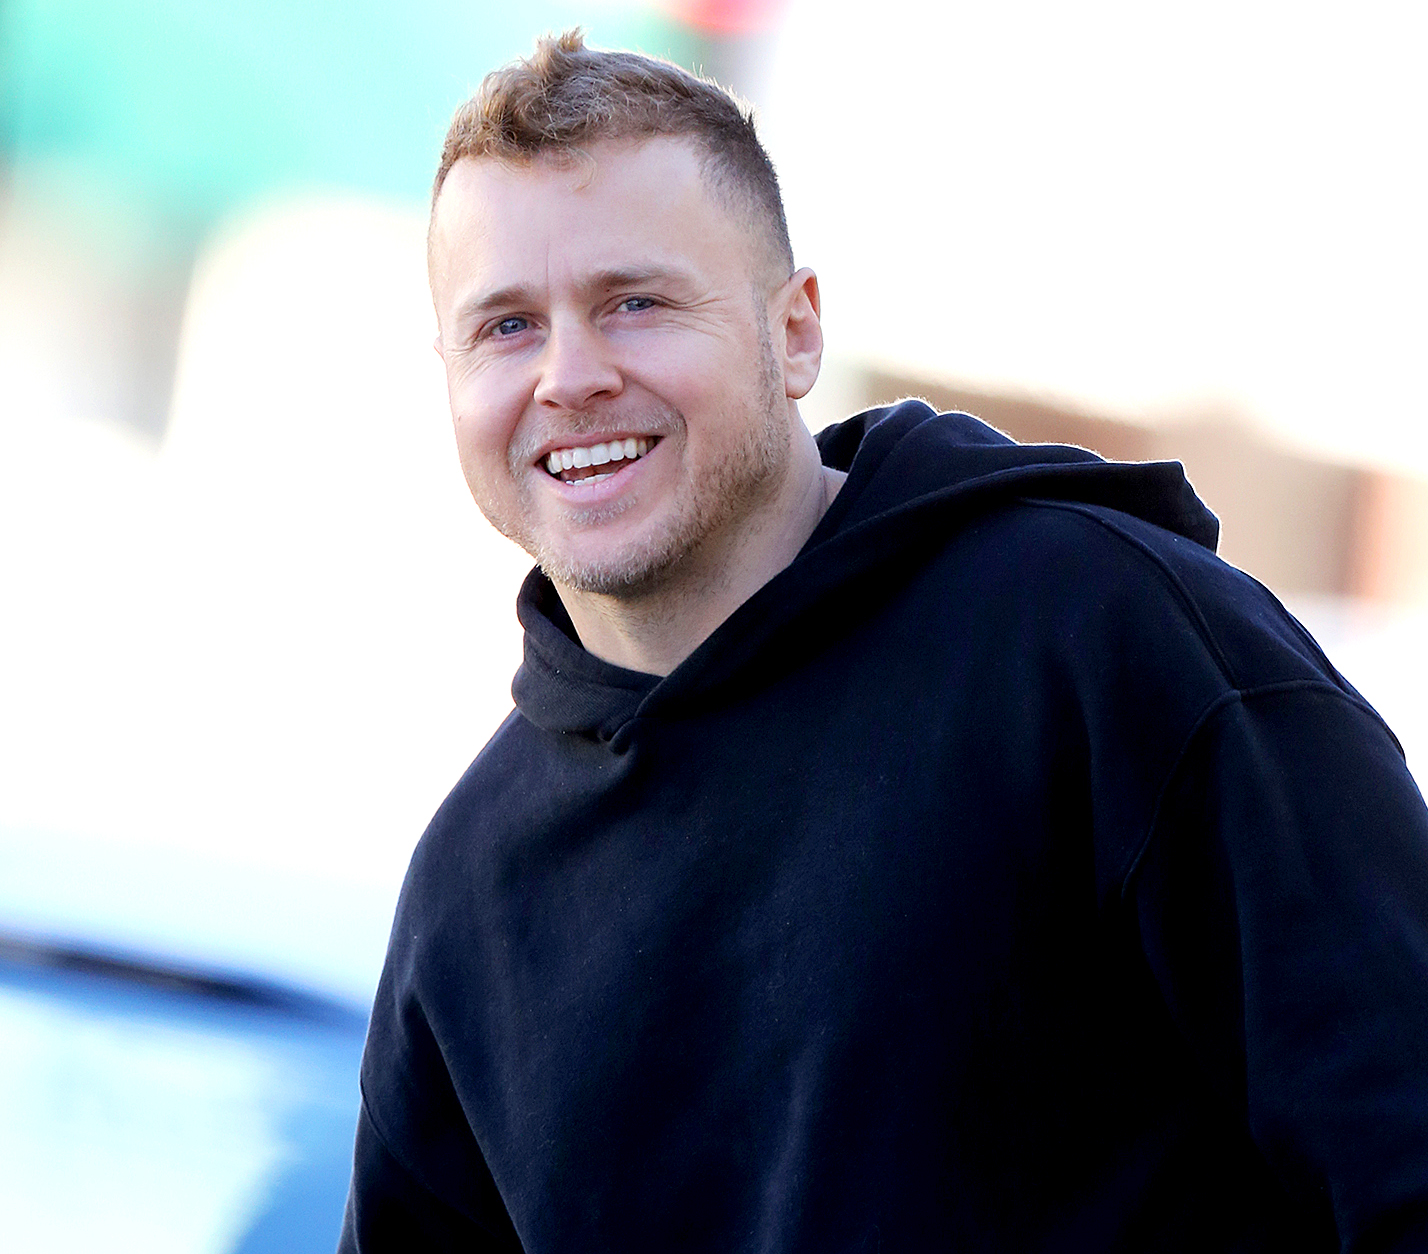 Spencer Pratt Teases 'New Faces' on 'The Hills: New Beginnings' Season 2: Plus, He Wants Cody Simpson to Join!